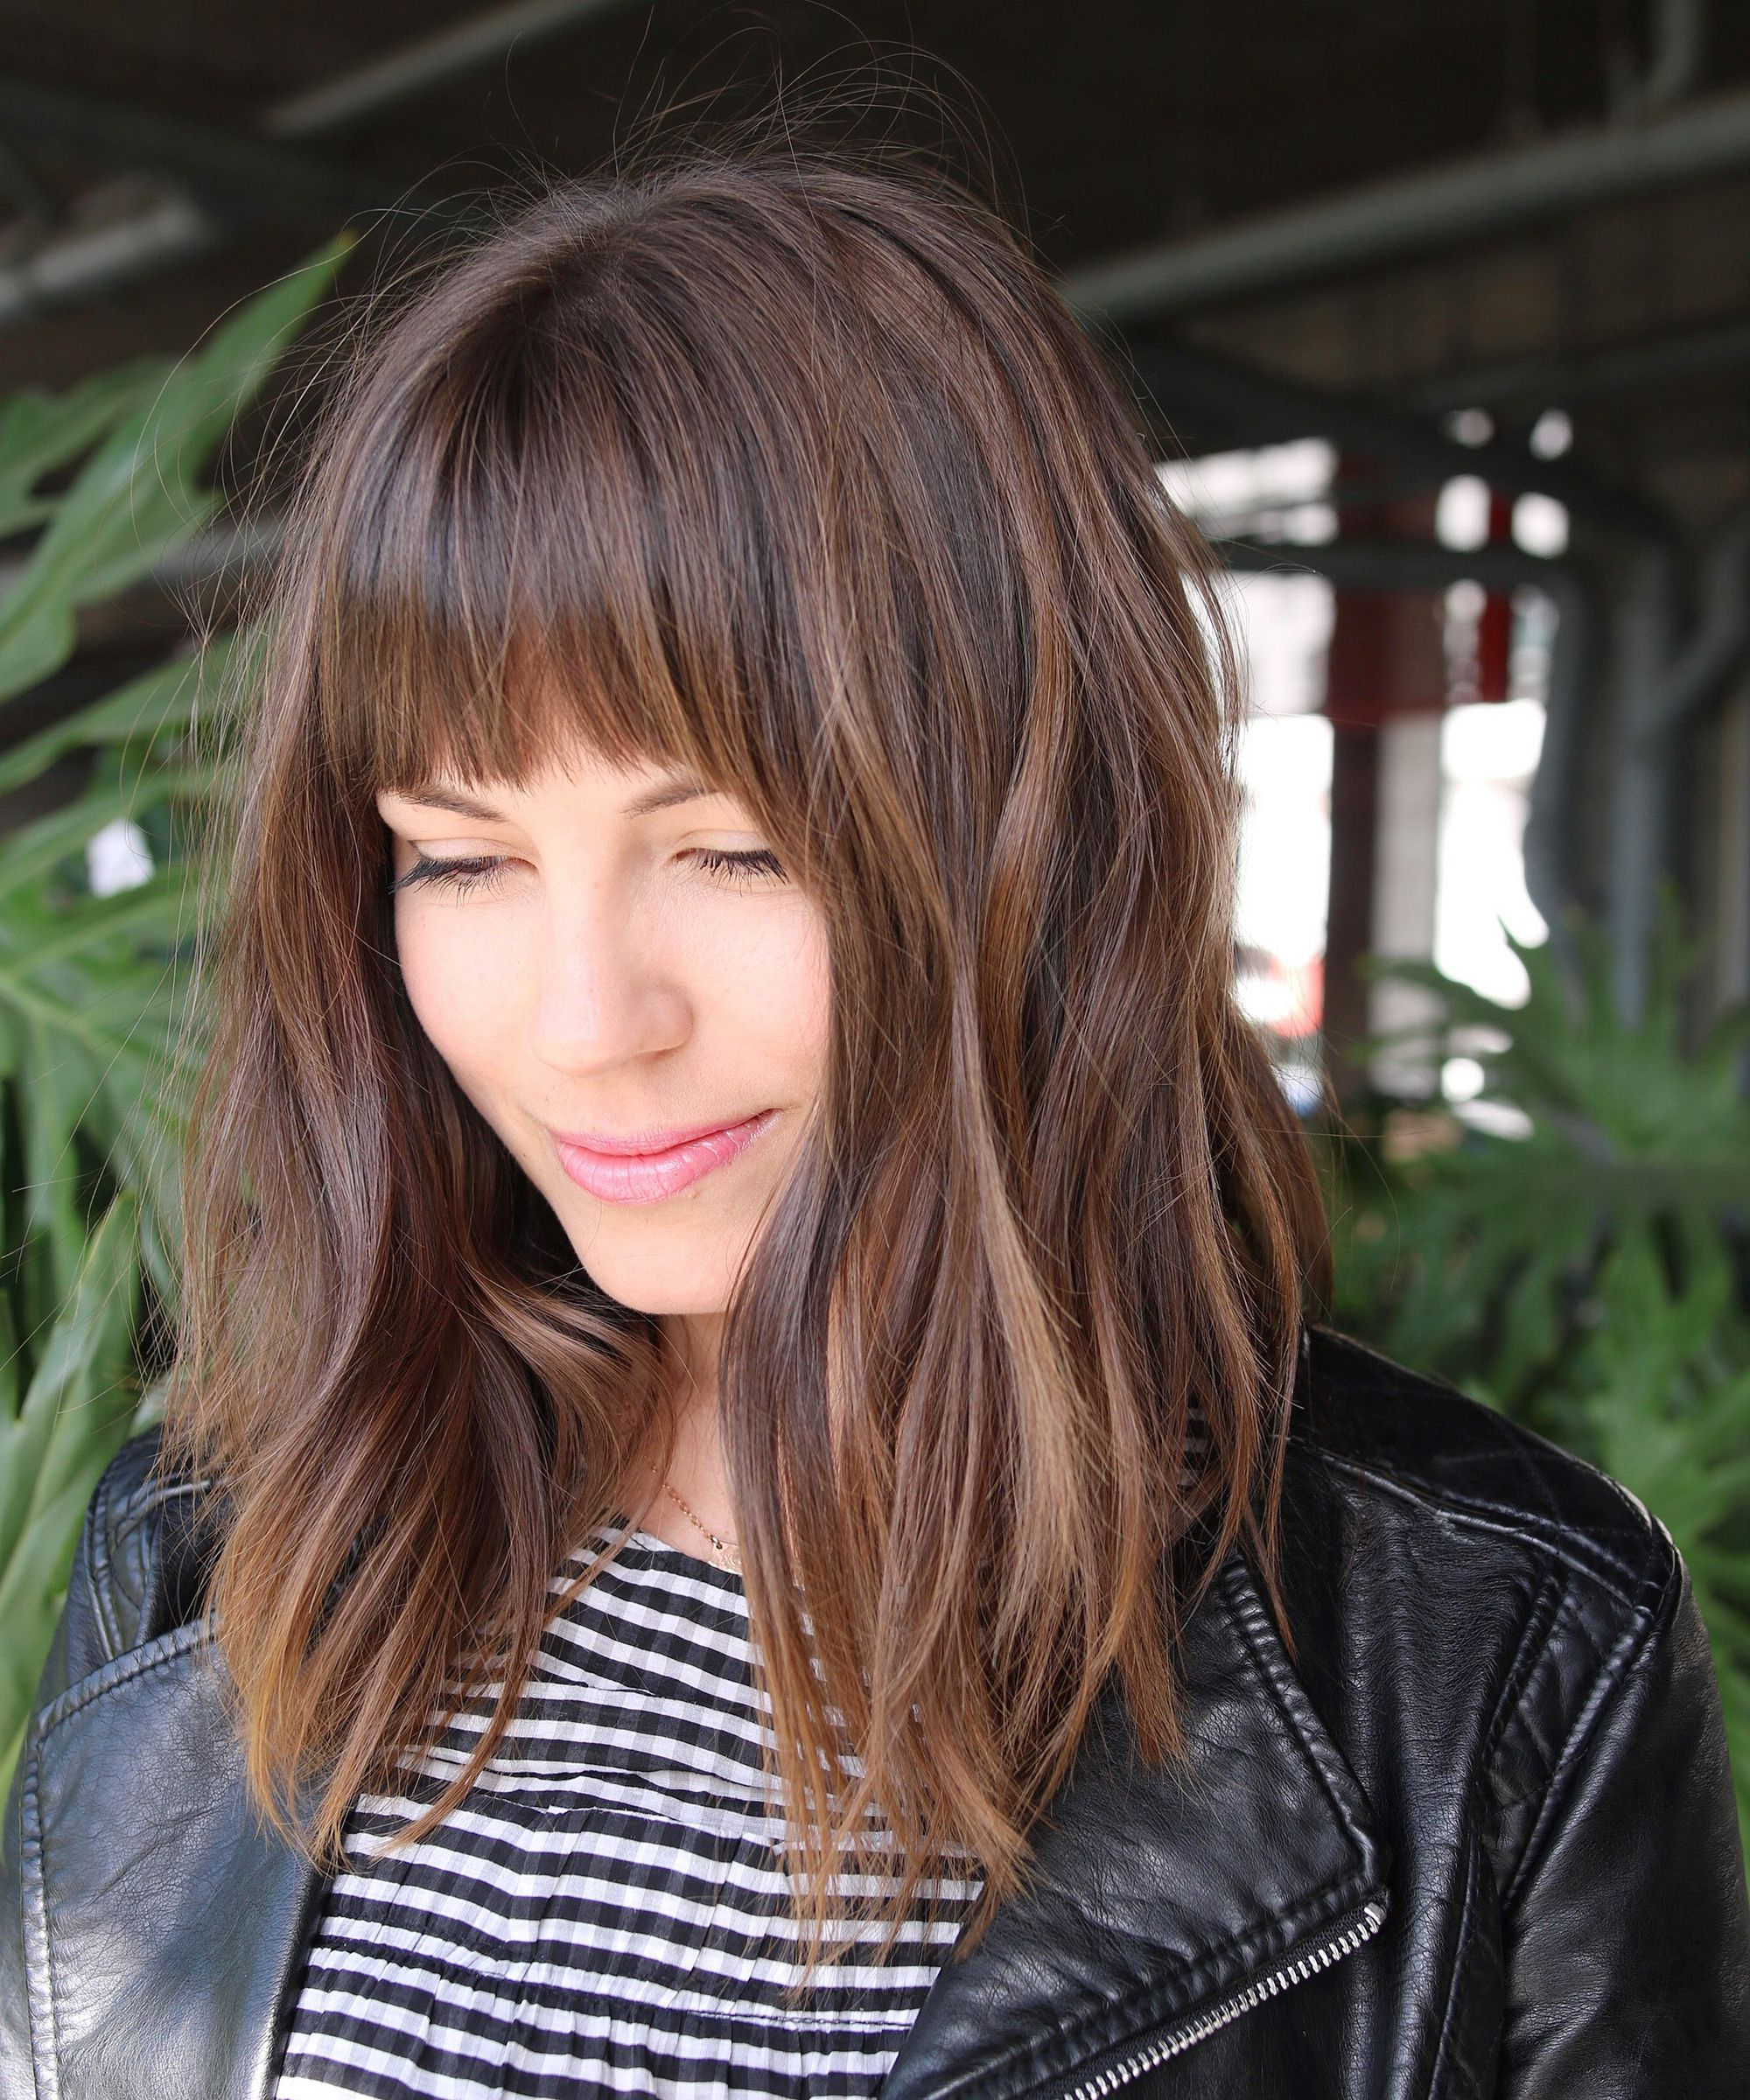 Top 2018 Hair Trends & Hairstyles We Loved This Year Inside Favorite Full Fringe Medium Hairstyles (View 19 of 20)